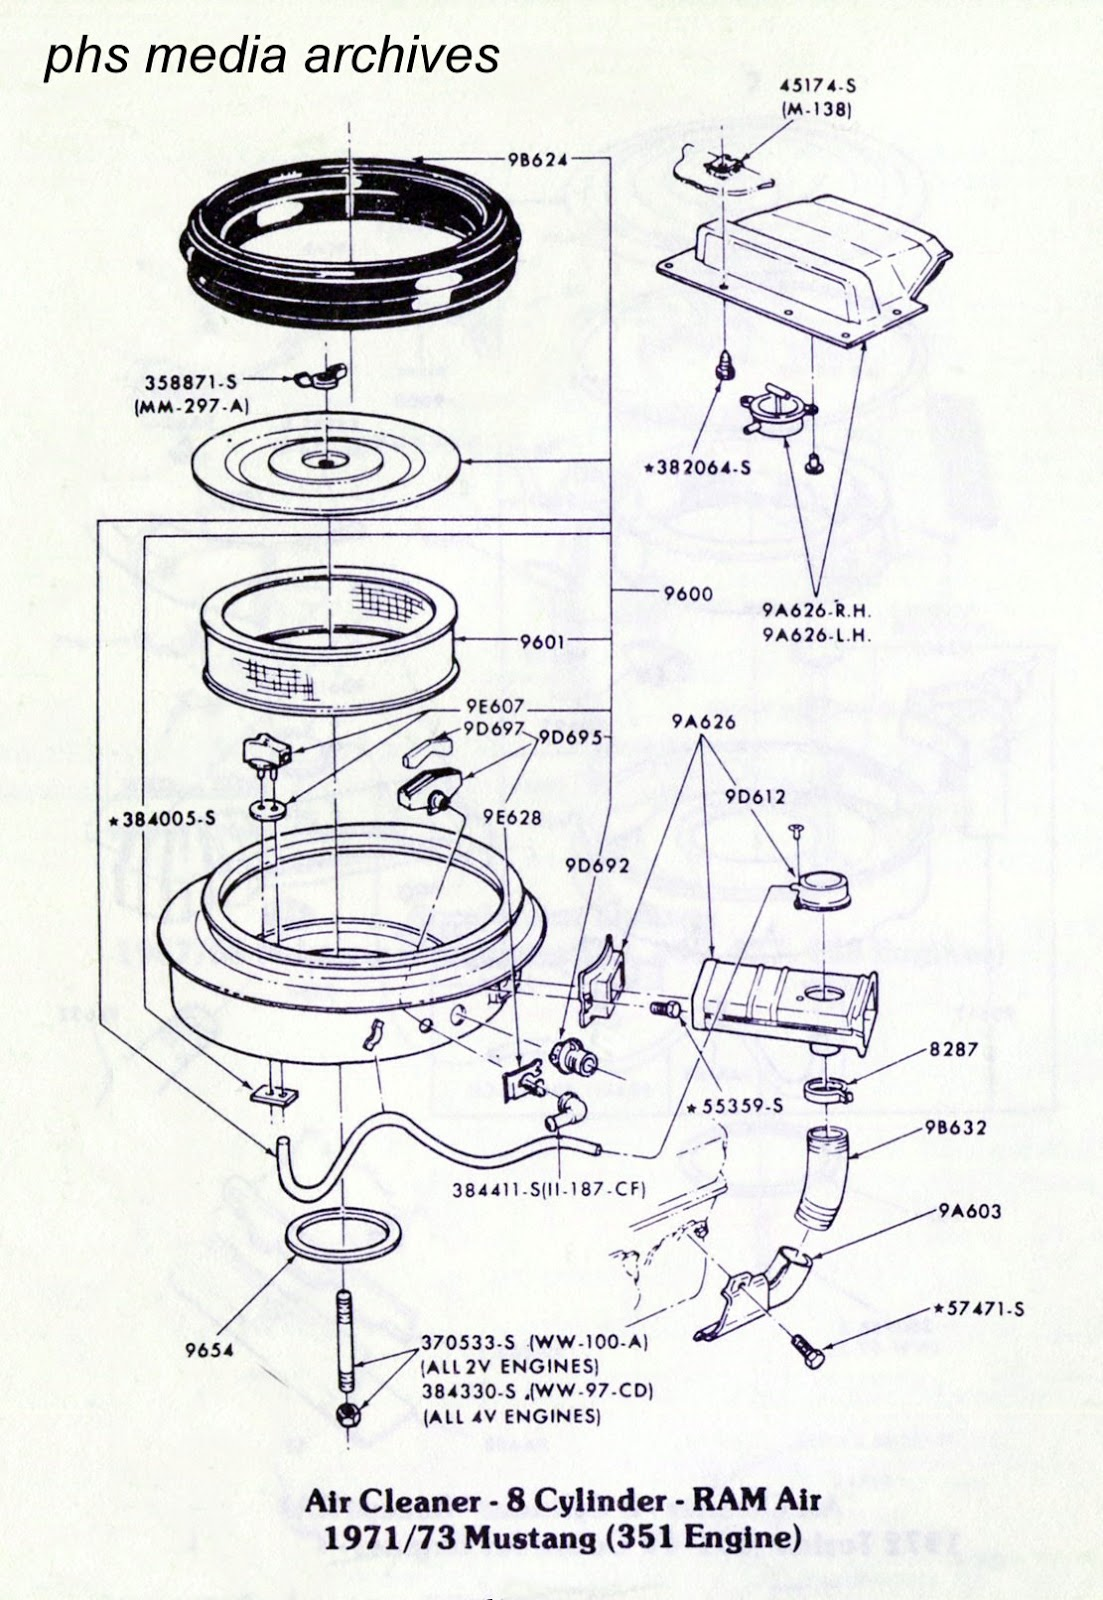 hight resolution of the ram air cleaner system for the 351 4v engine is shown above note that in the drawing there are specific part numbers for certain pieces where